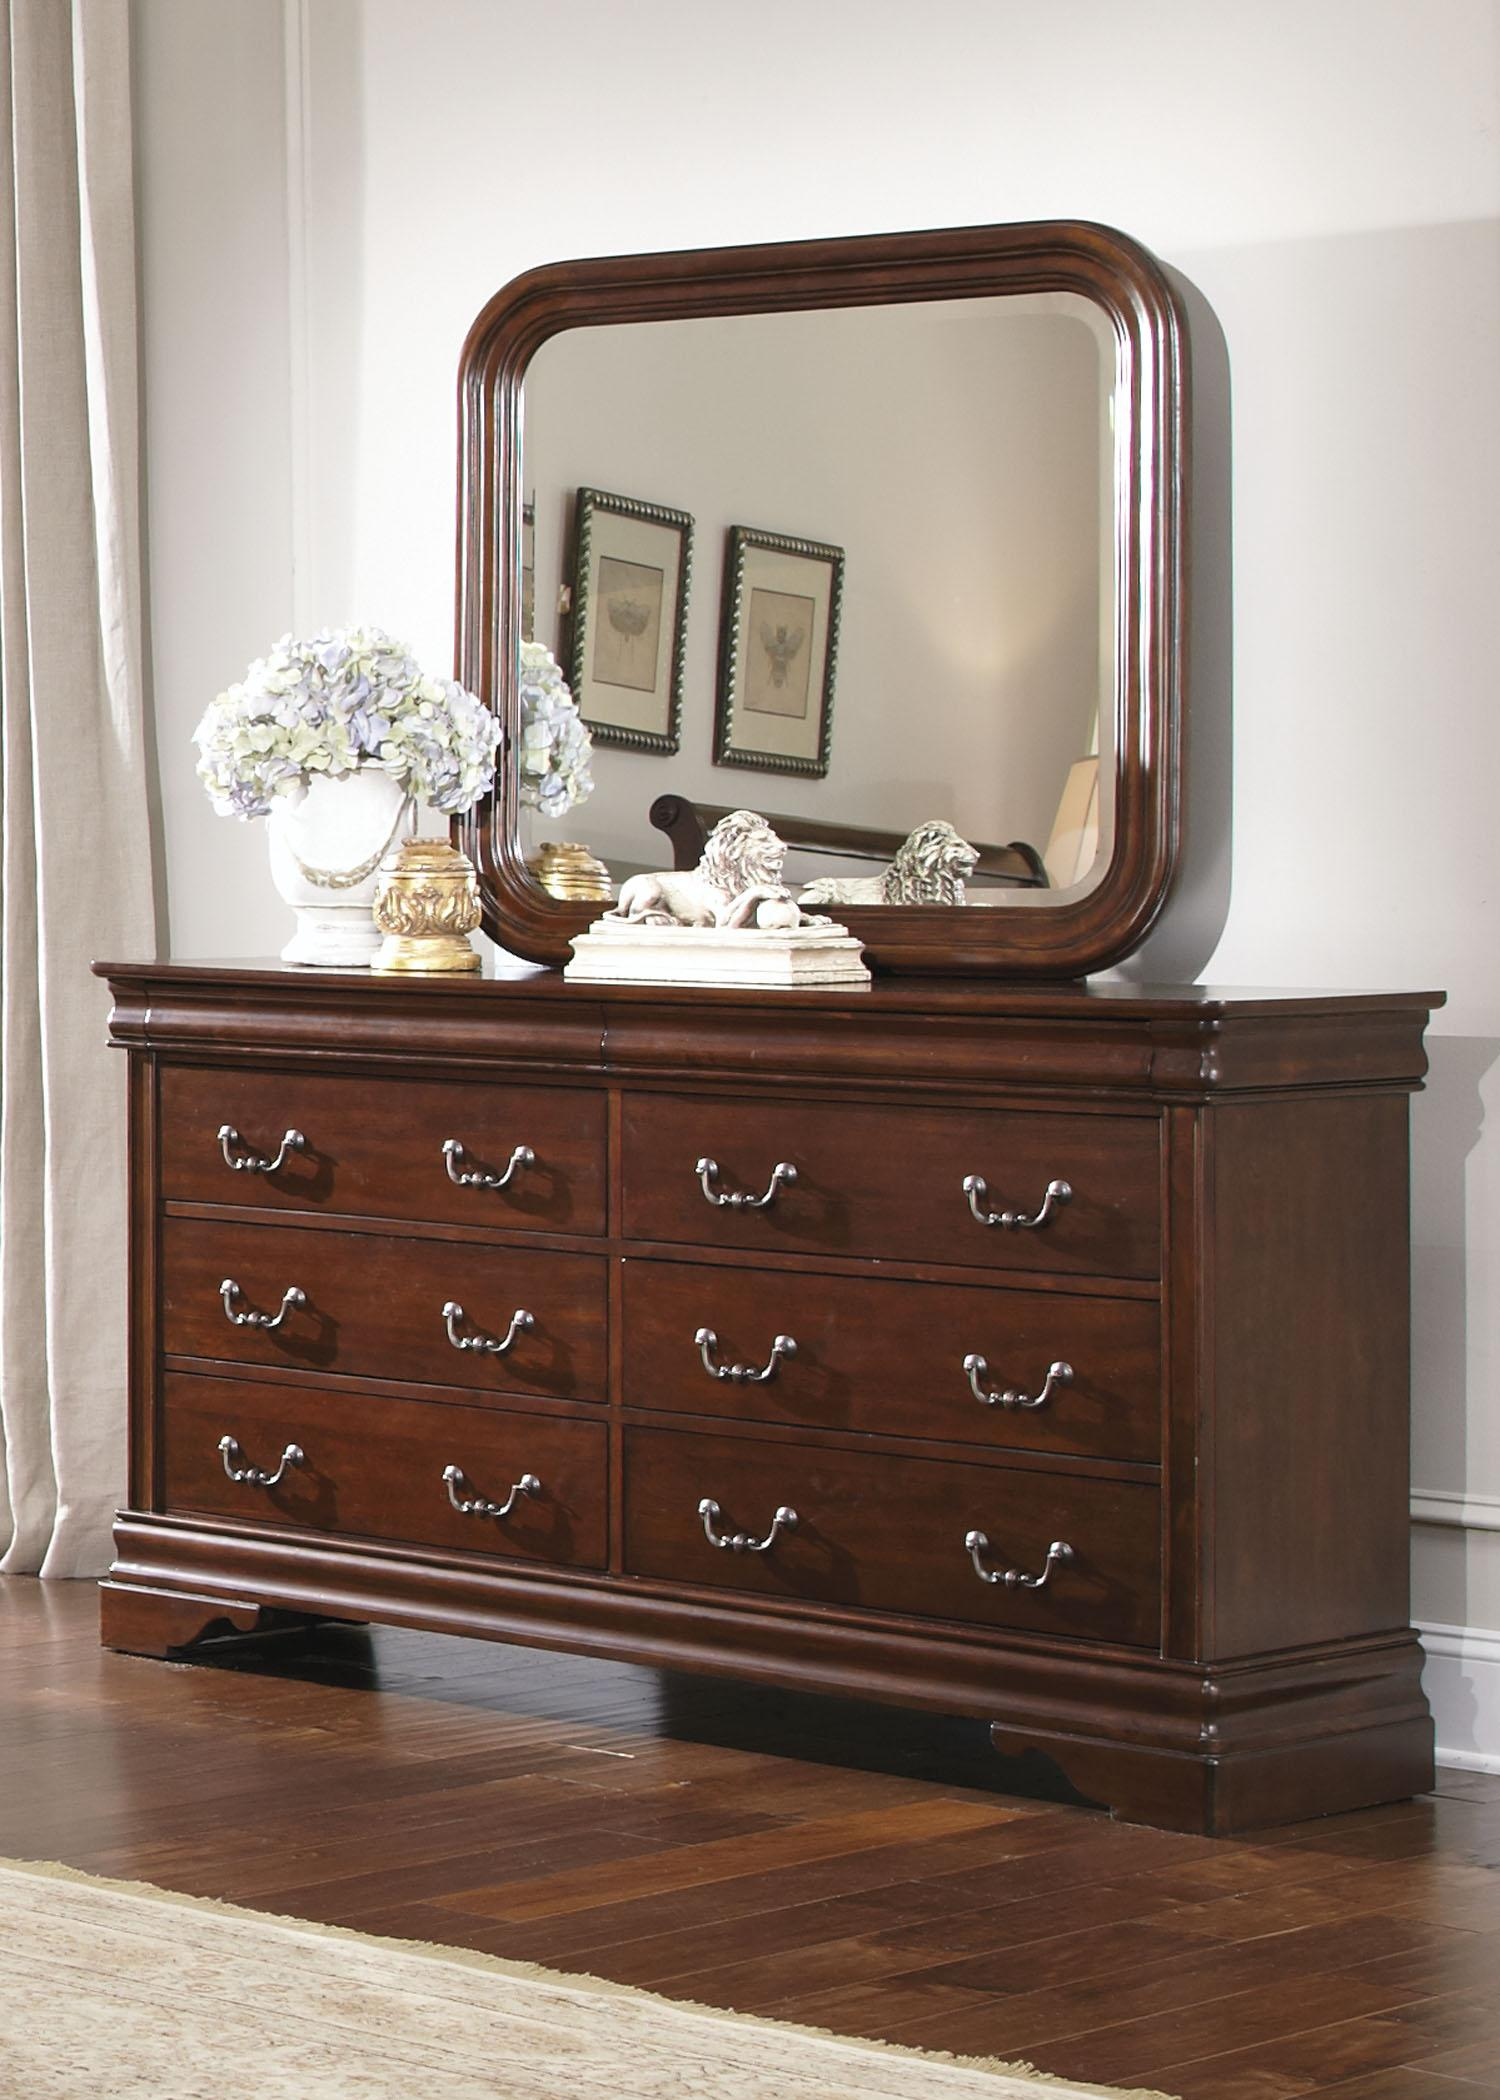 Carriage Court Dresser & Mirror by Liberty Furniture at Northeast Factory Direct